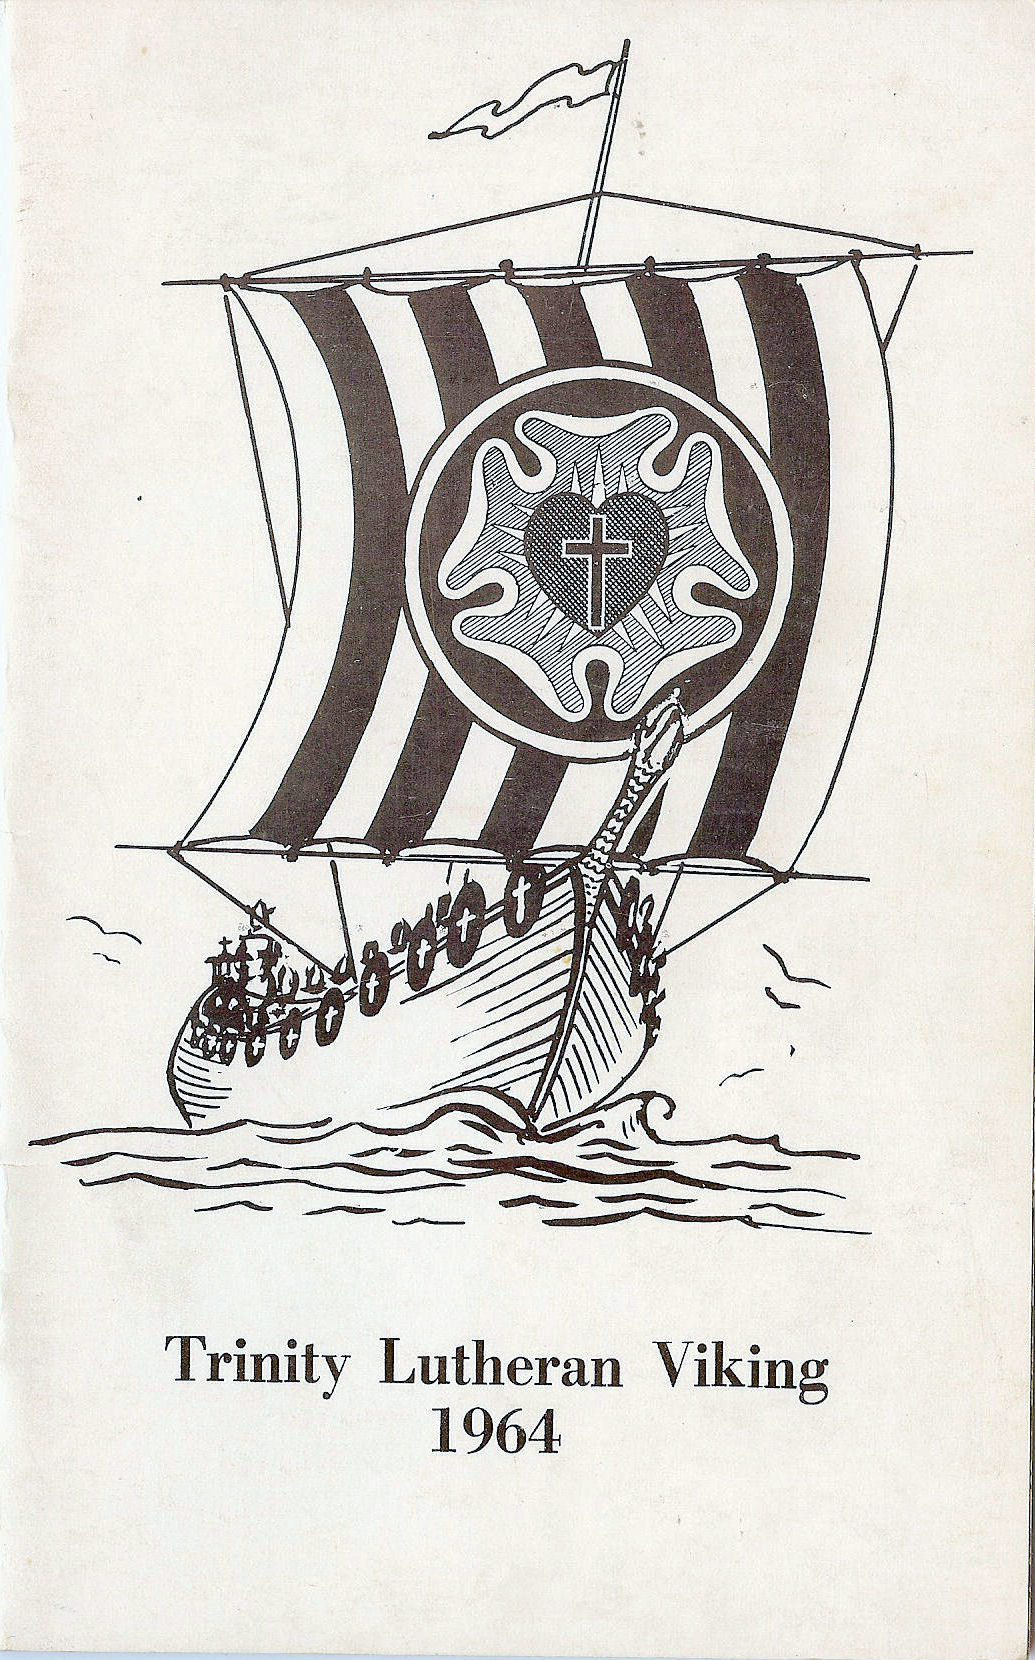 63-64 Yearbook Cover